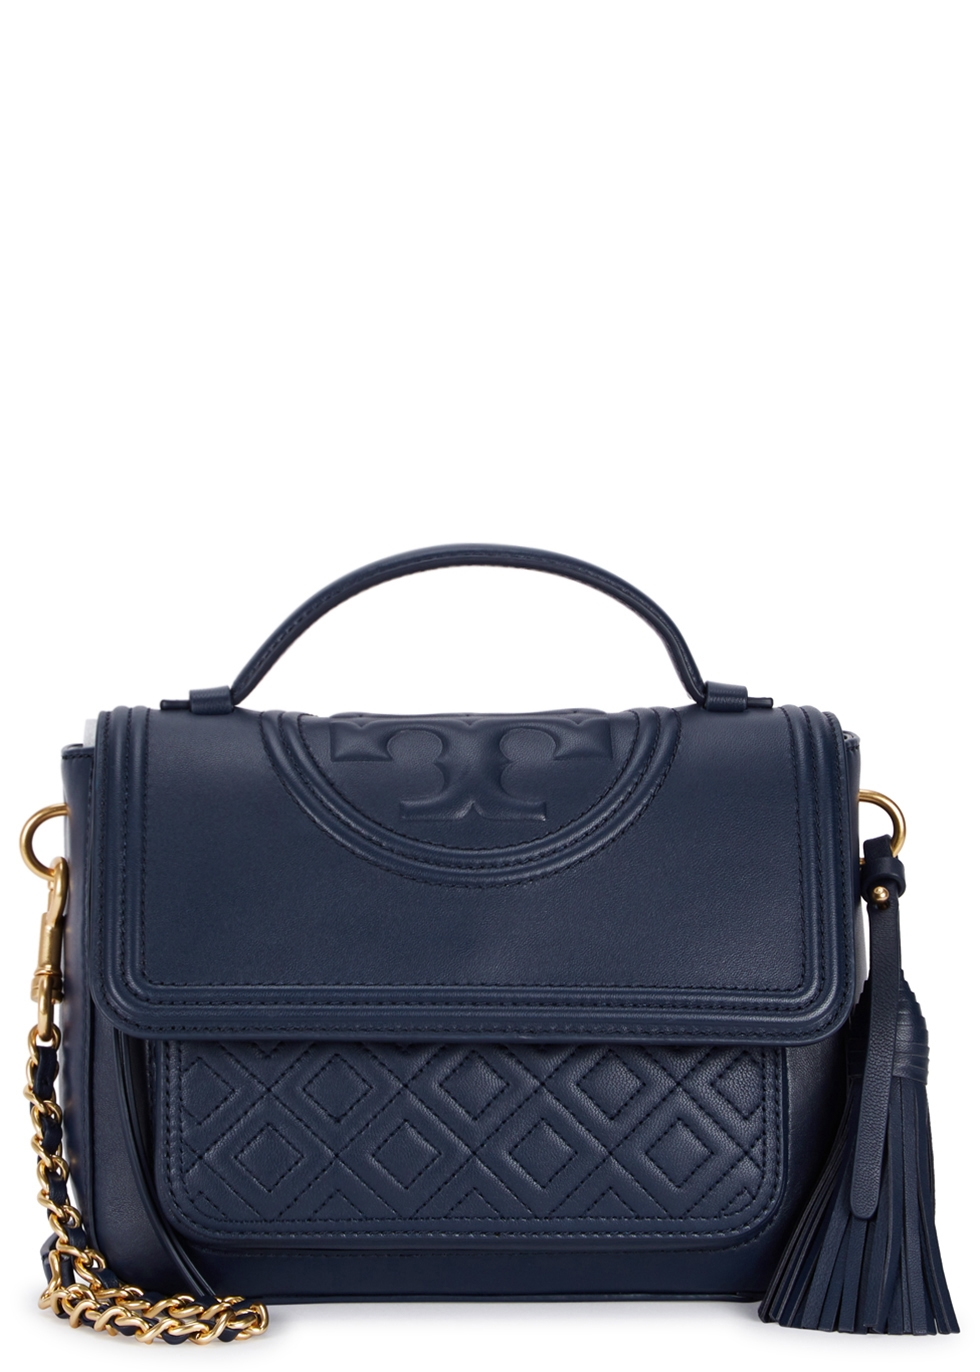 TORY BURCH FLEMING NAVY LEATHER SHOULDER BAG